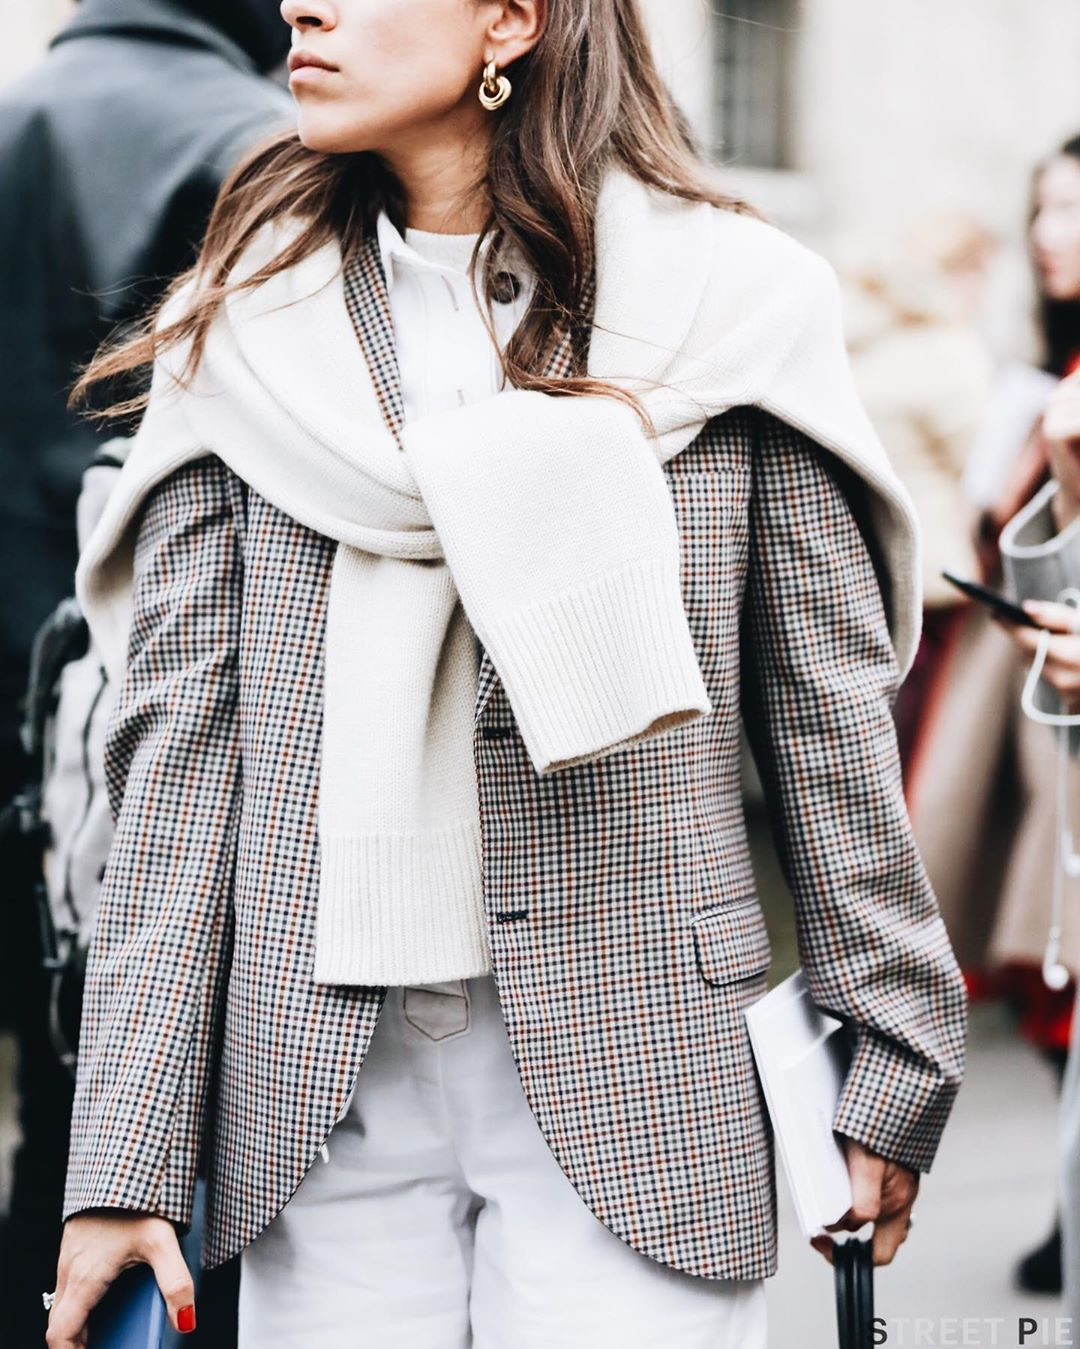 These Chic Plaid Blazers Make an Easy Fall Outfit